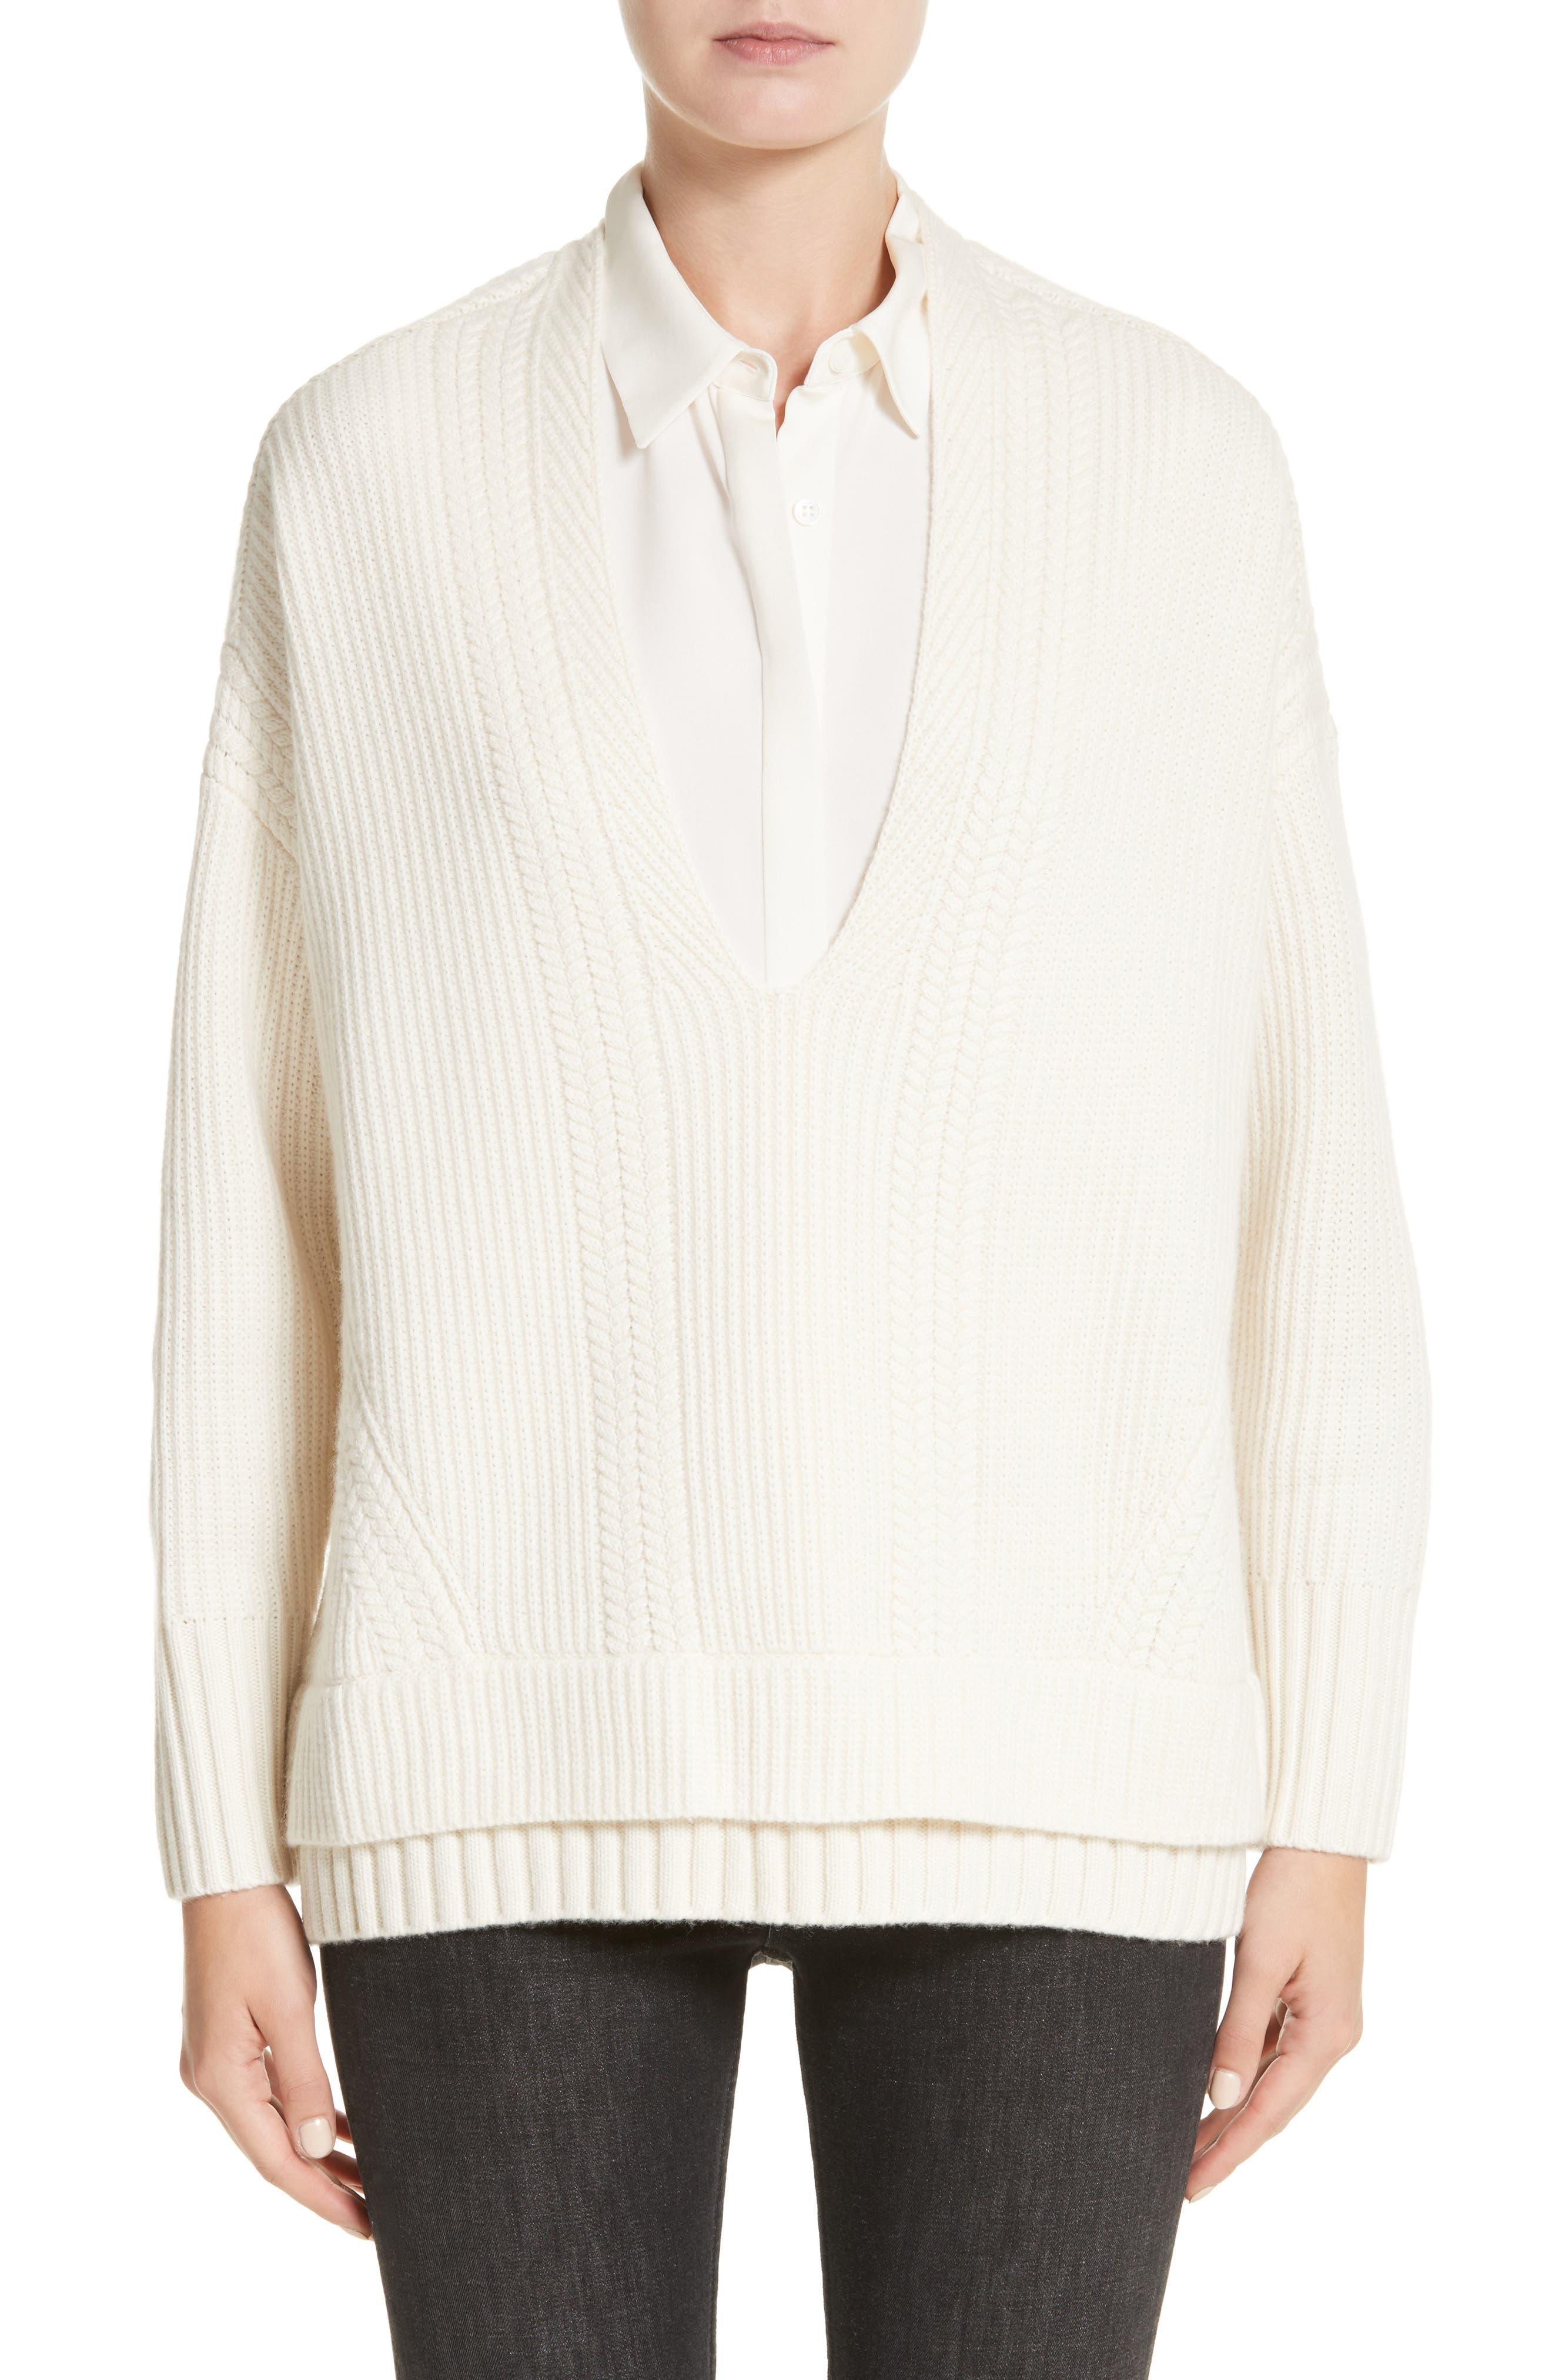 Santerno Wool & Cashmere Cable Knit Sweater,                             Main thumbnail 1, color,                             103